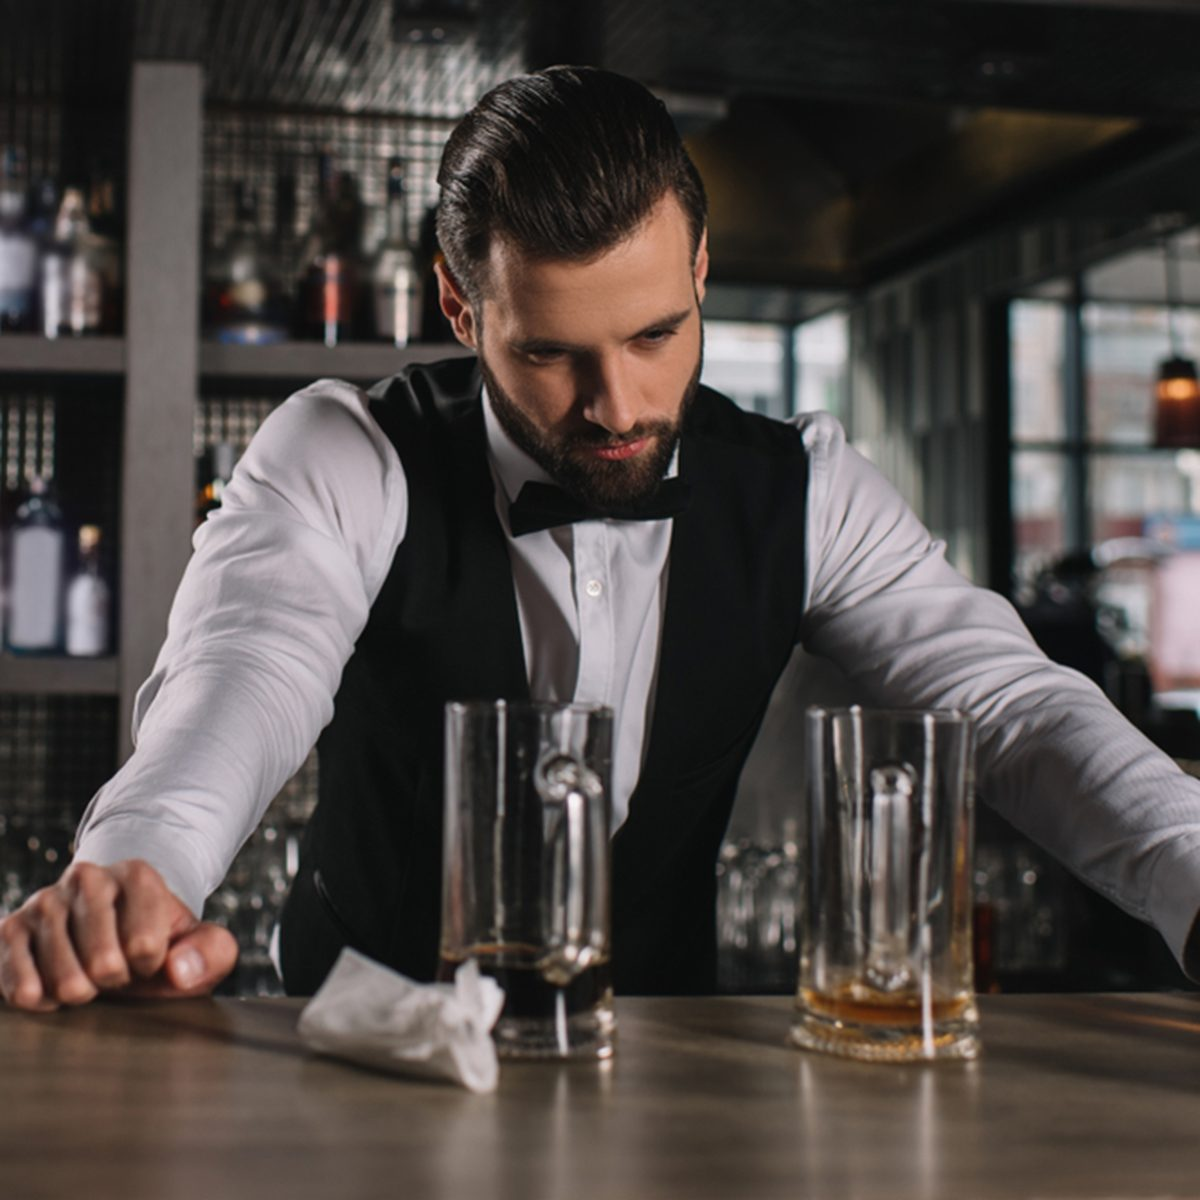 tired handsome bartender leaning on bar counter and looking at dirty glasses and trash; Shutterstock ID 1034501887; Job (TFH, TOH, RD, BNB, CWM, CM): TOH